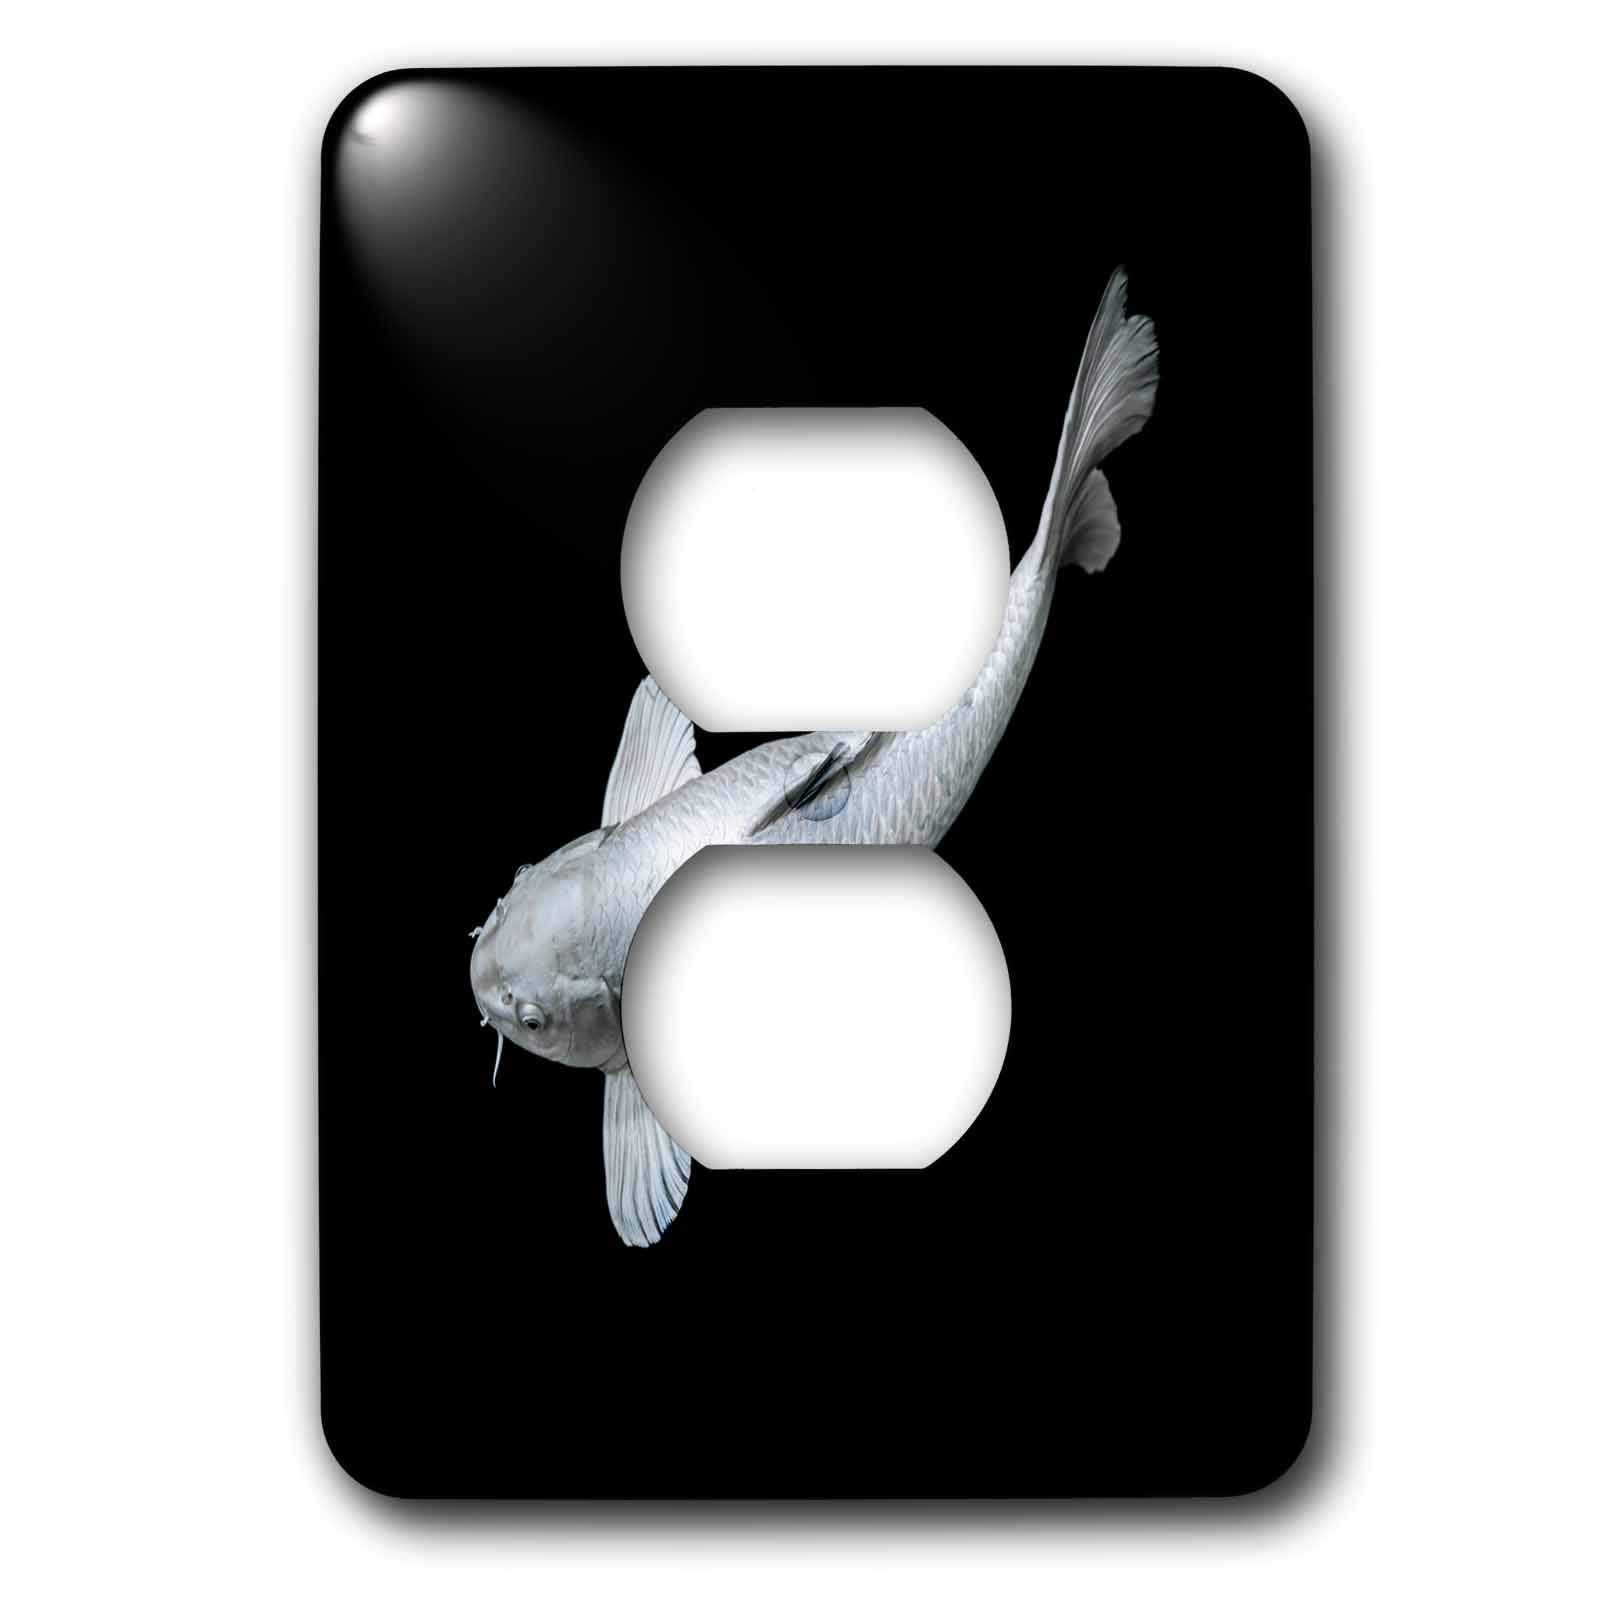 3dRose Sven Herkenrath Animal - Portrait of Silver Japanese Asia Koi Fish Photography - Light Switch Covers - 2 plug outlet cover (lsp_294937_6)